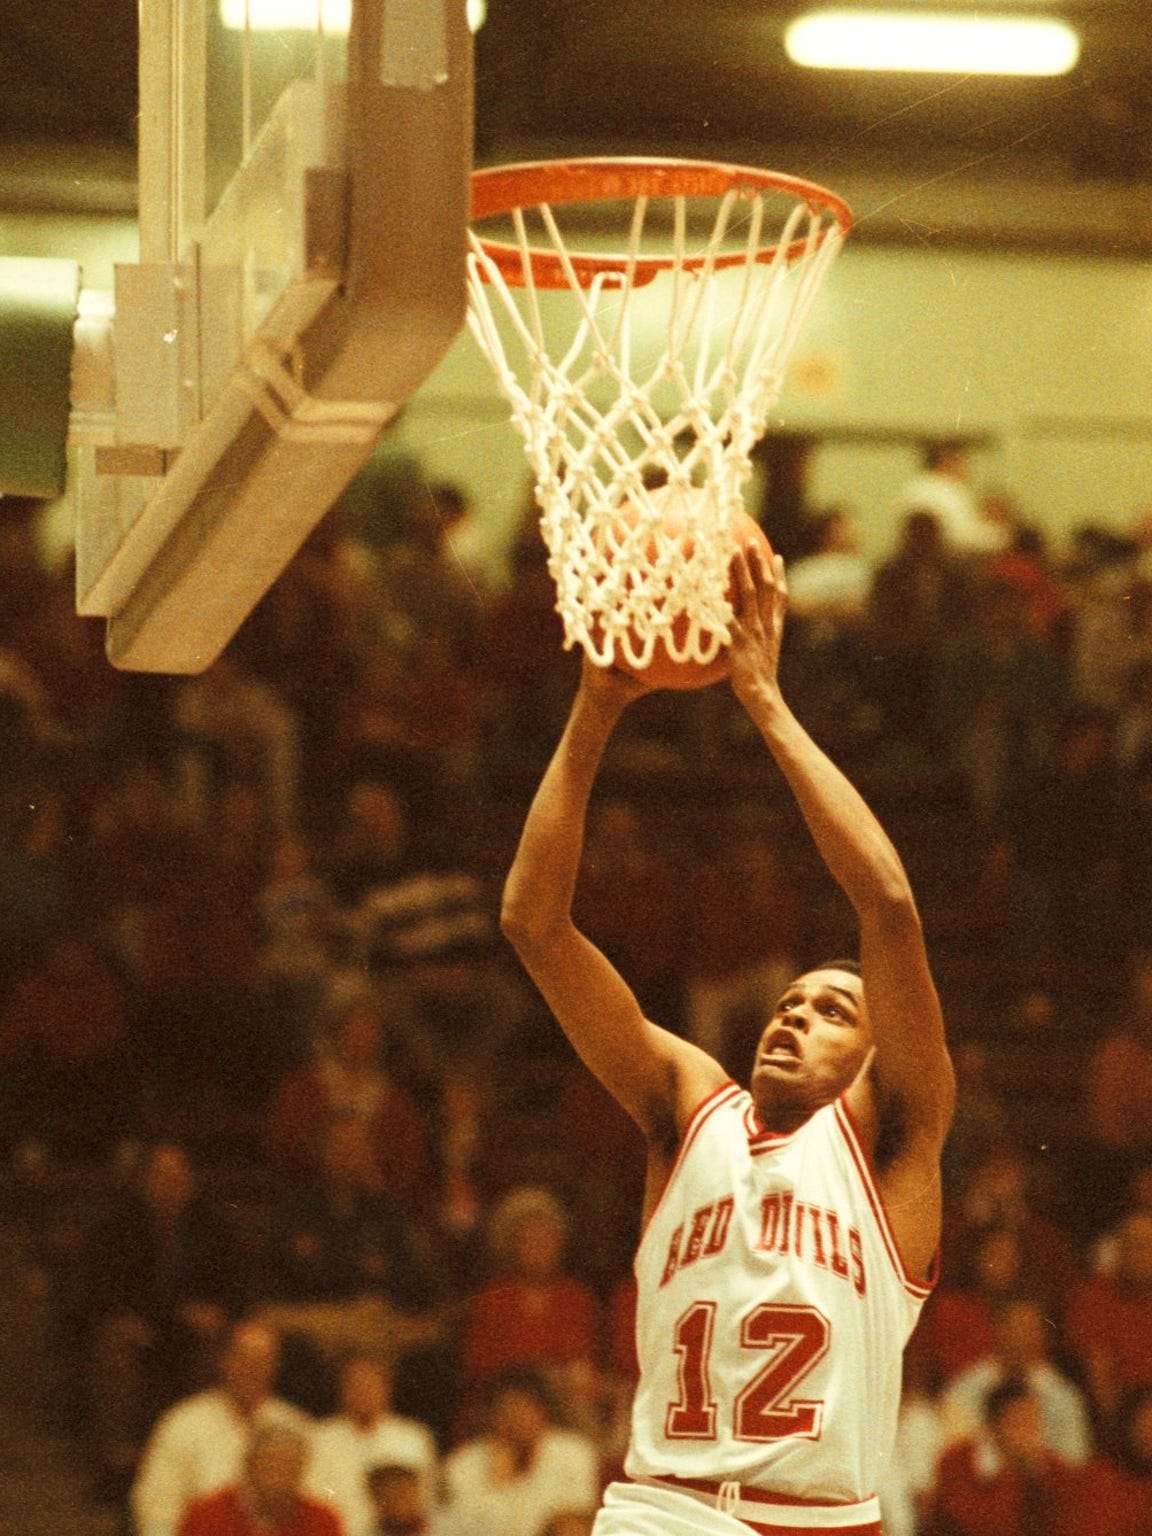 Richmond High School graduate Billy Wright, puts up a layup in a basketball game in 1992.